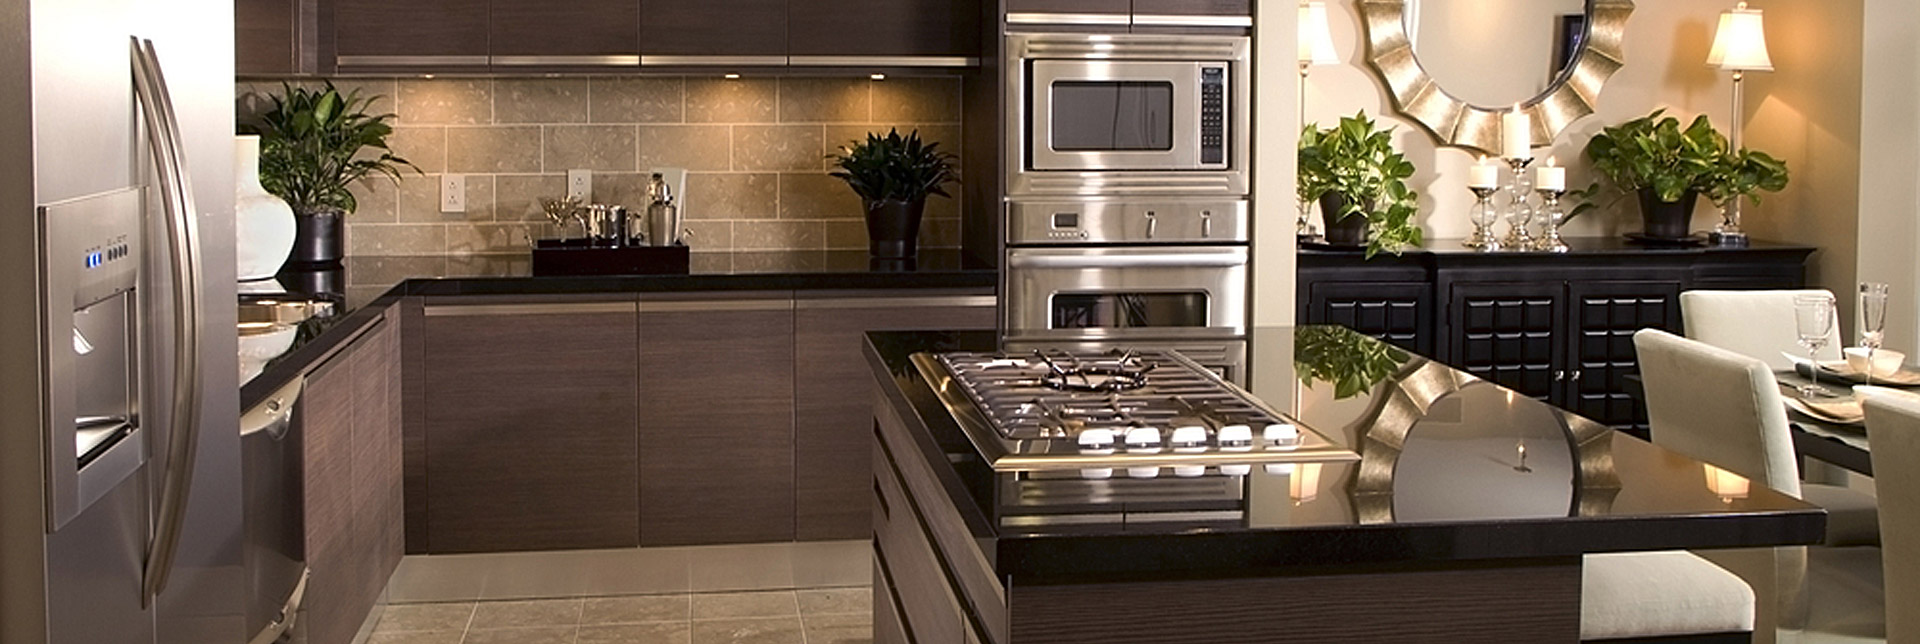 Kitchen renovations canberra icandy kitchens bathrooms for Kitchen designs canberra